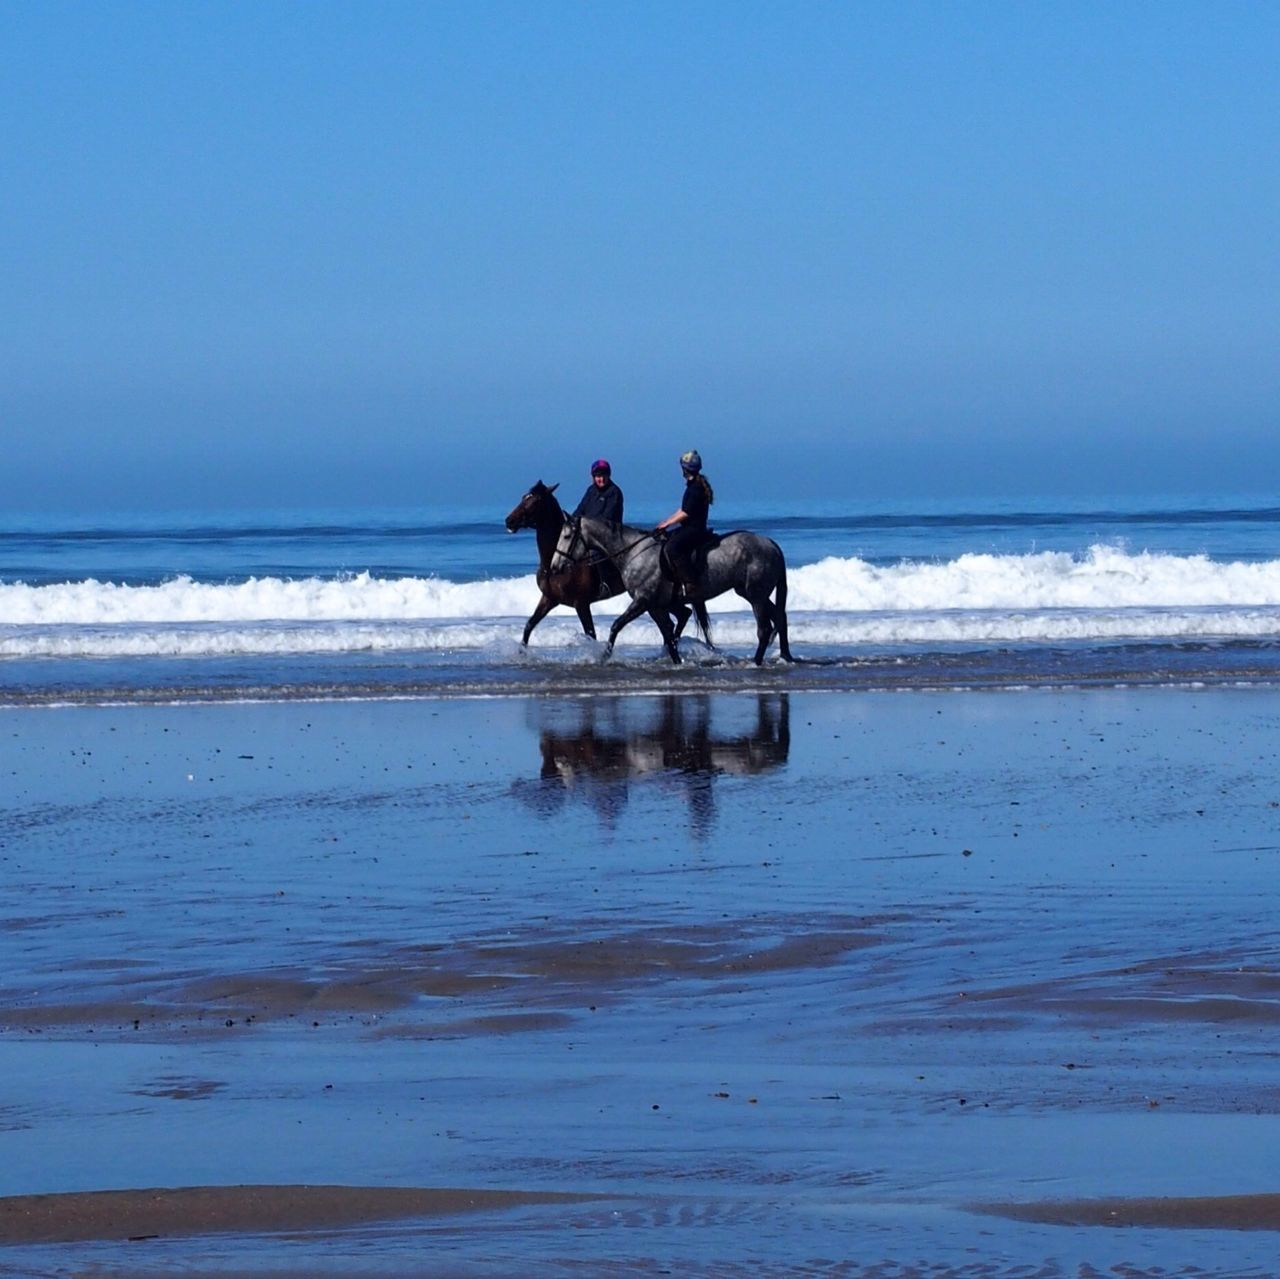 Man And Woman Riding Horses On Beach At Newgale